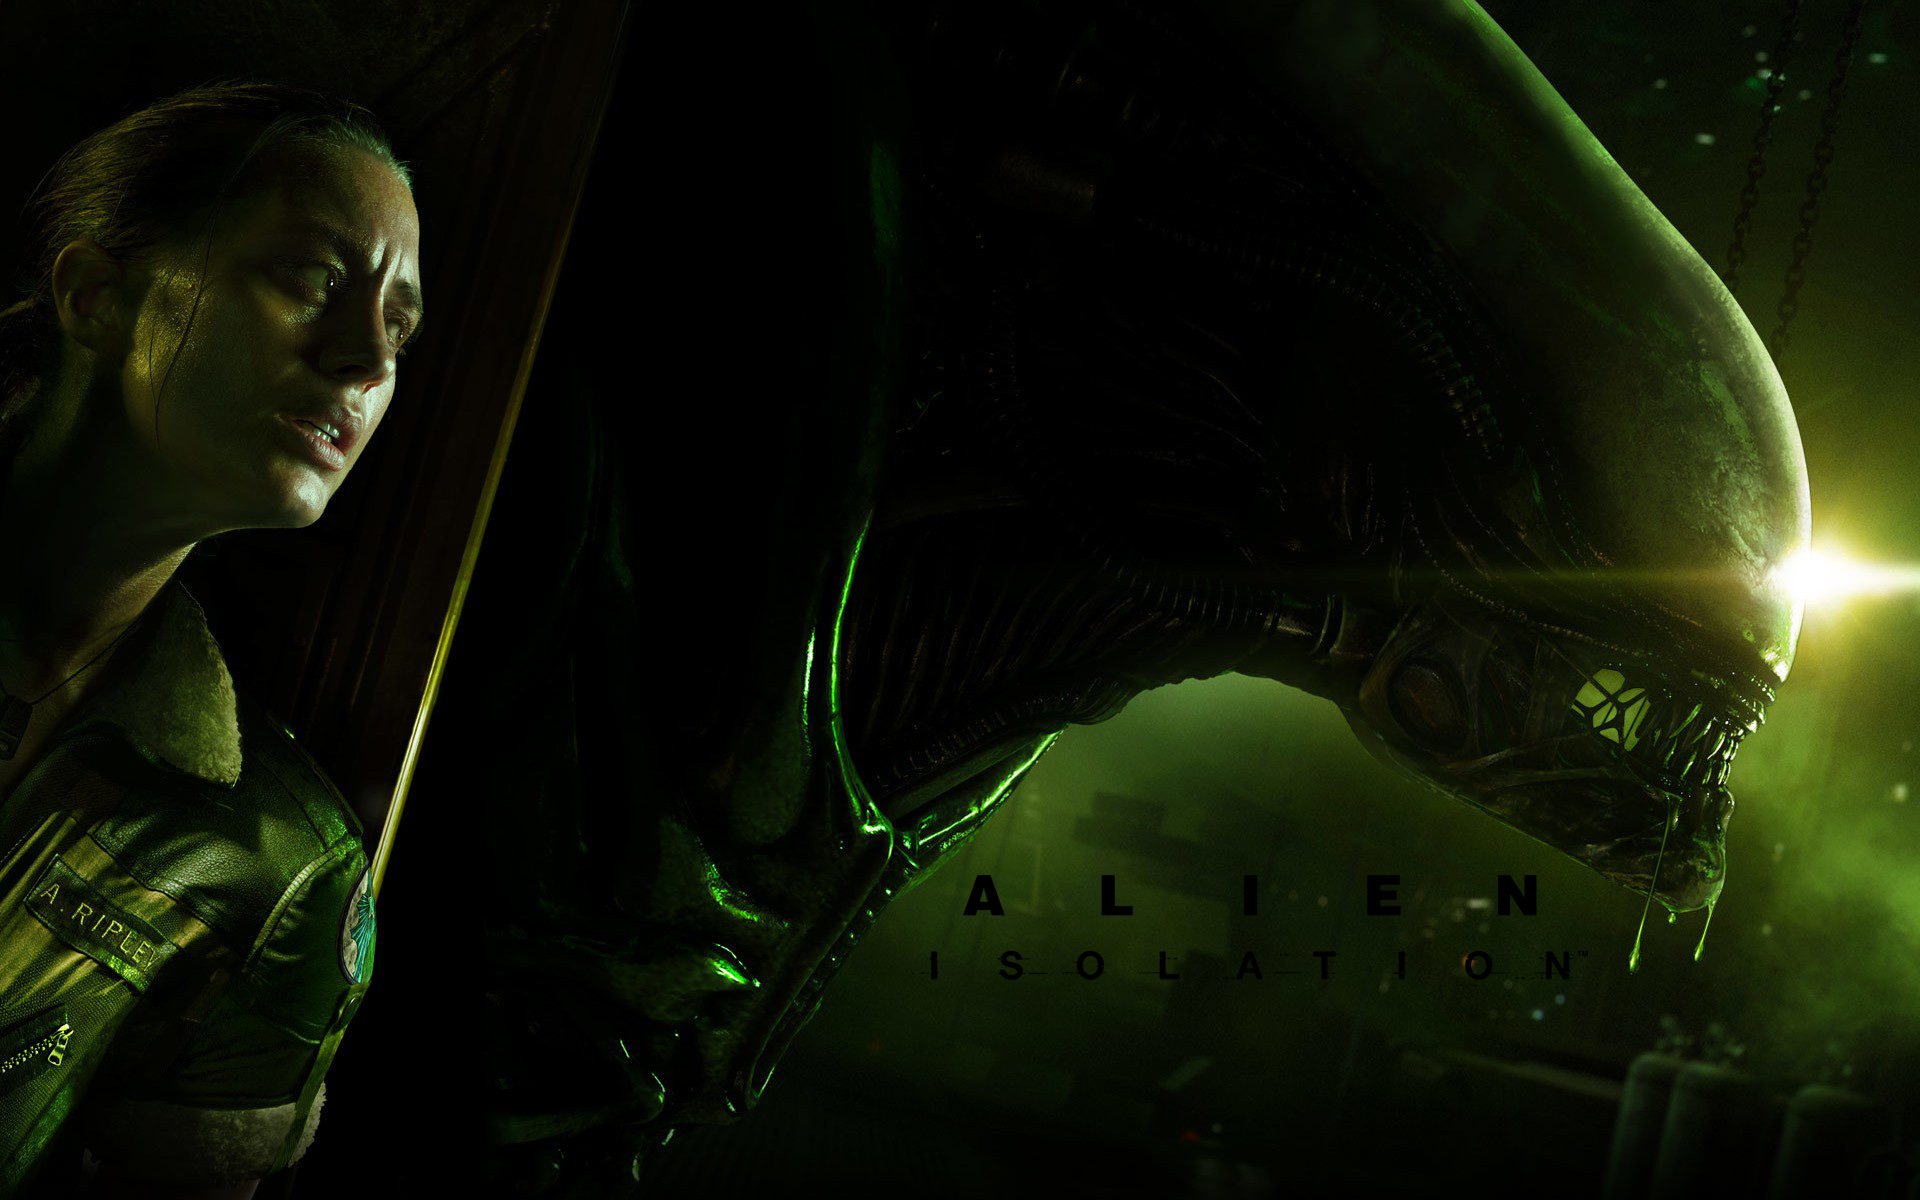 Alien Isolation Game 1221.1 Kb